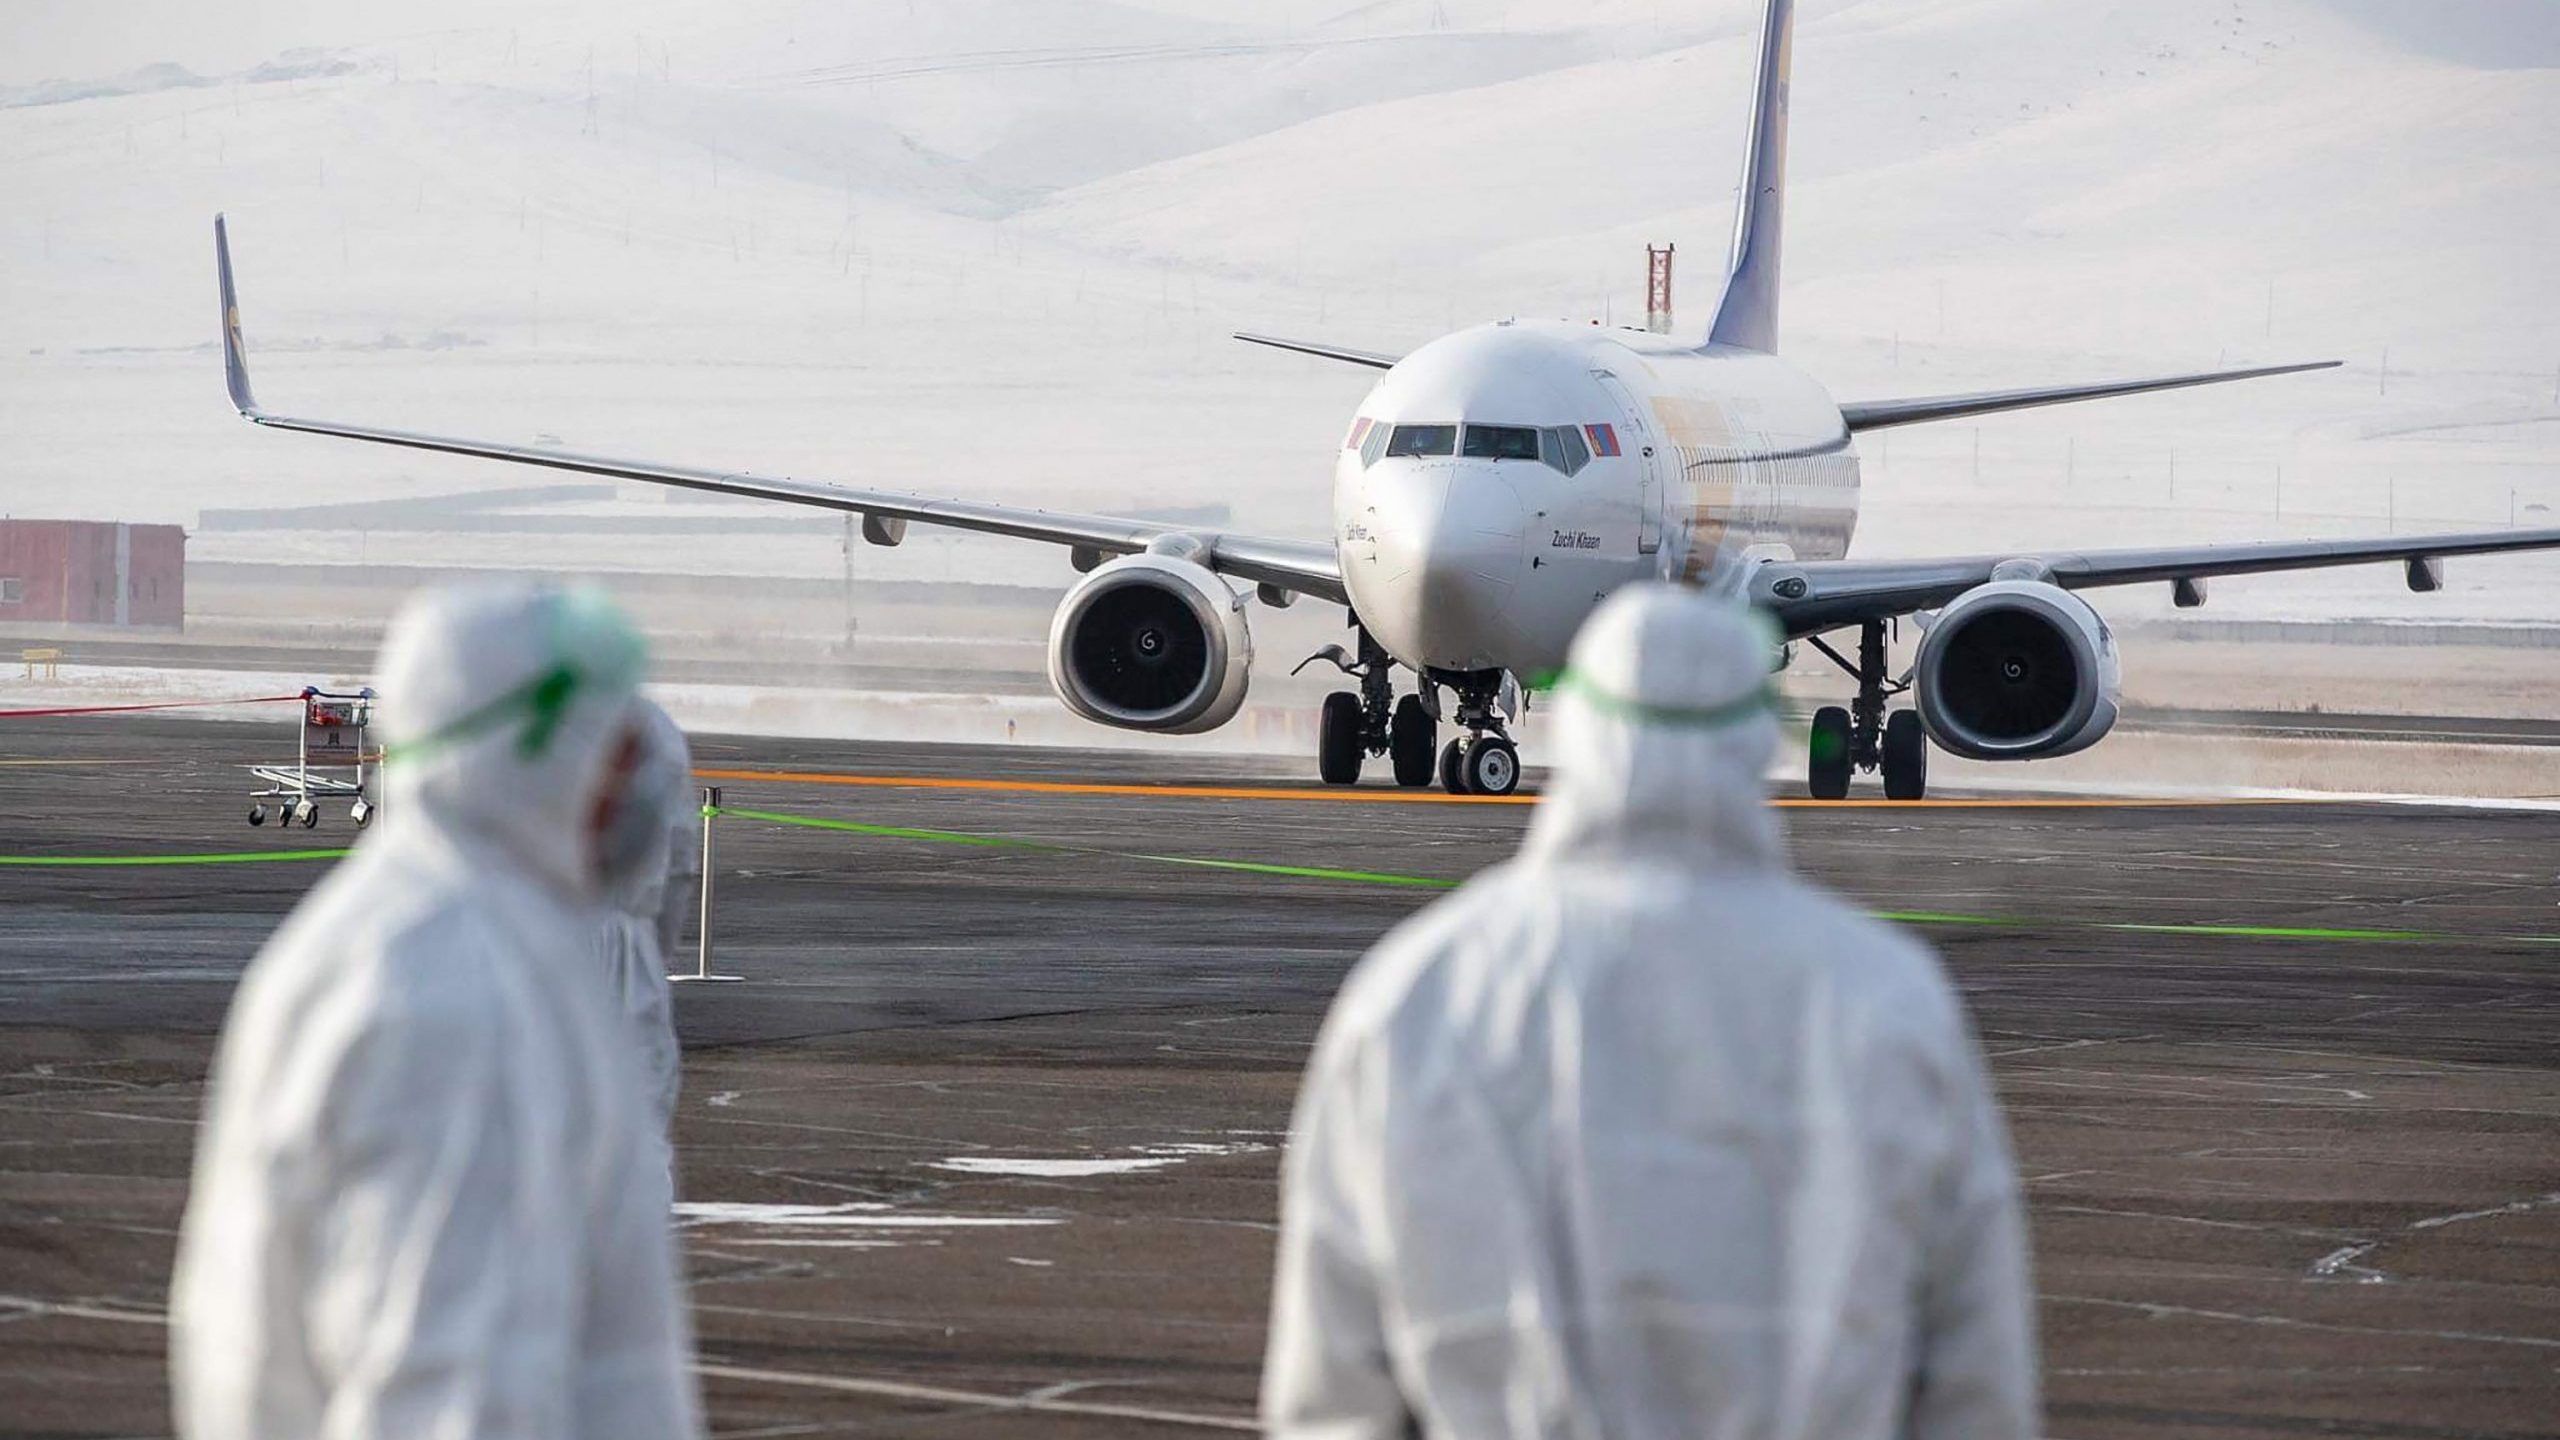 Staff wearing protective suits watch as a plane carrying evacuees from Wuhan arrives in Mongolia on Feb.1, 2020, amid the coronavirus outbreak in China. (Credit: Byambasuren Byamba-Ochir/AFP via Getty Images)